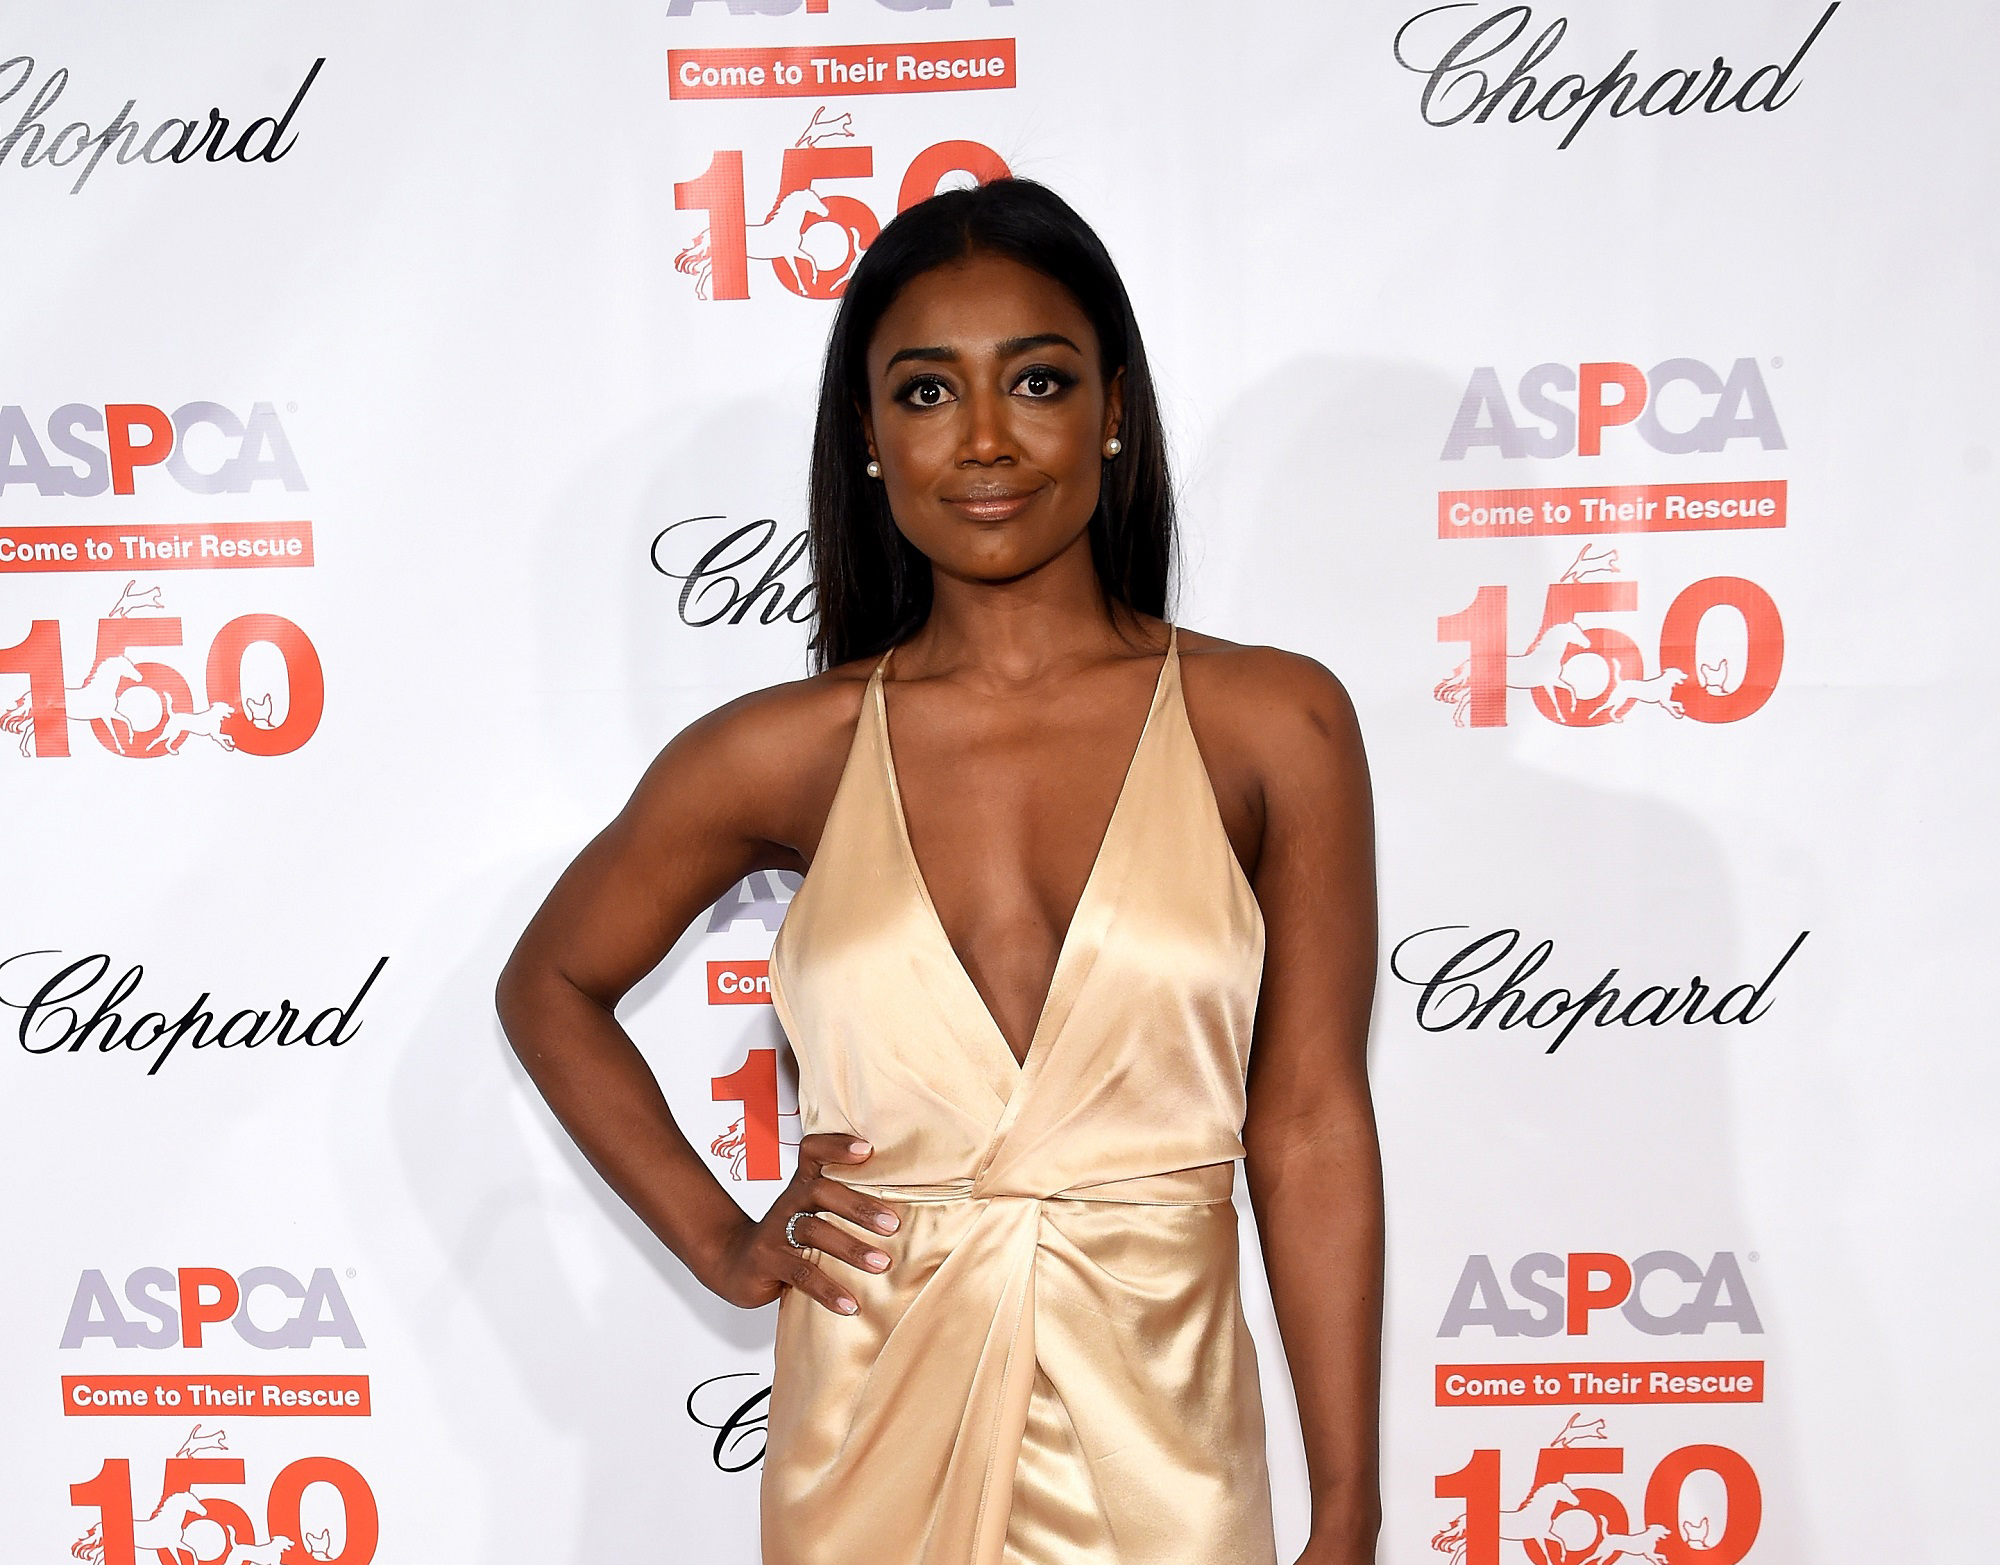 """""""NEW YORK, NY - APRIL 14: Actress Patina Miller attends ASPCA 19th Annual Bergh Ball honoring Drew Barrymore, hosted by Nathan Lane wiith music by Mark Ronson at the Plaza Hotel on April 14, 2016 in New York City (Photo by Jamie McCarthy/Getty Images for ASPCA)"""""""